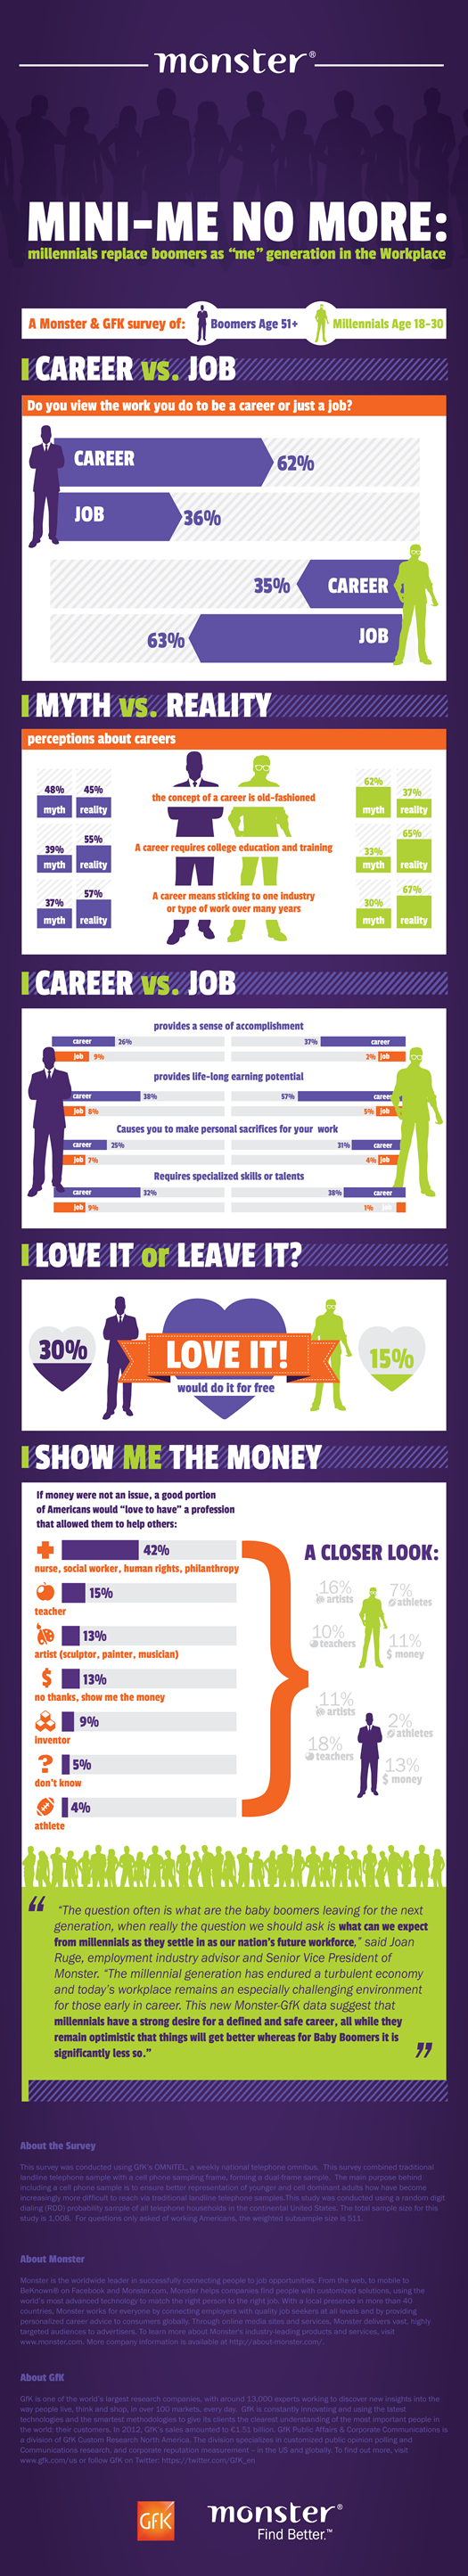 """Monster Infographic, Mini-Me No More: Millennials replace boomers as """"me"""" generation in the Workplace"""